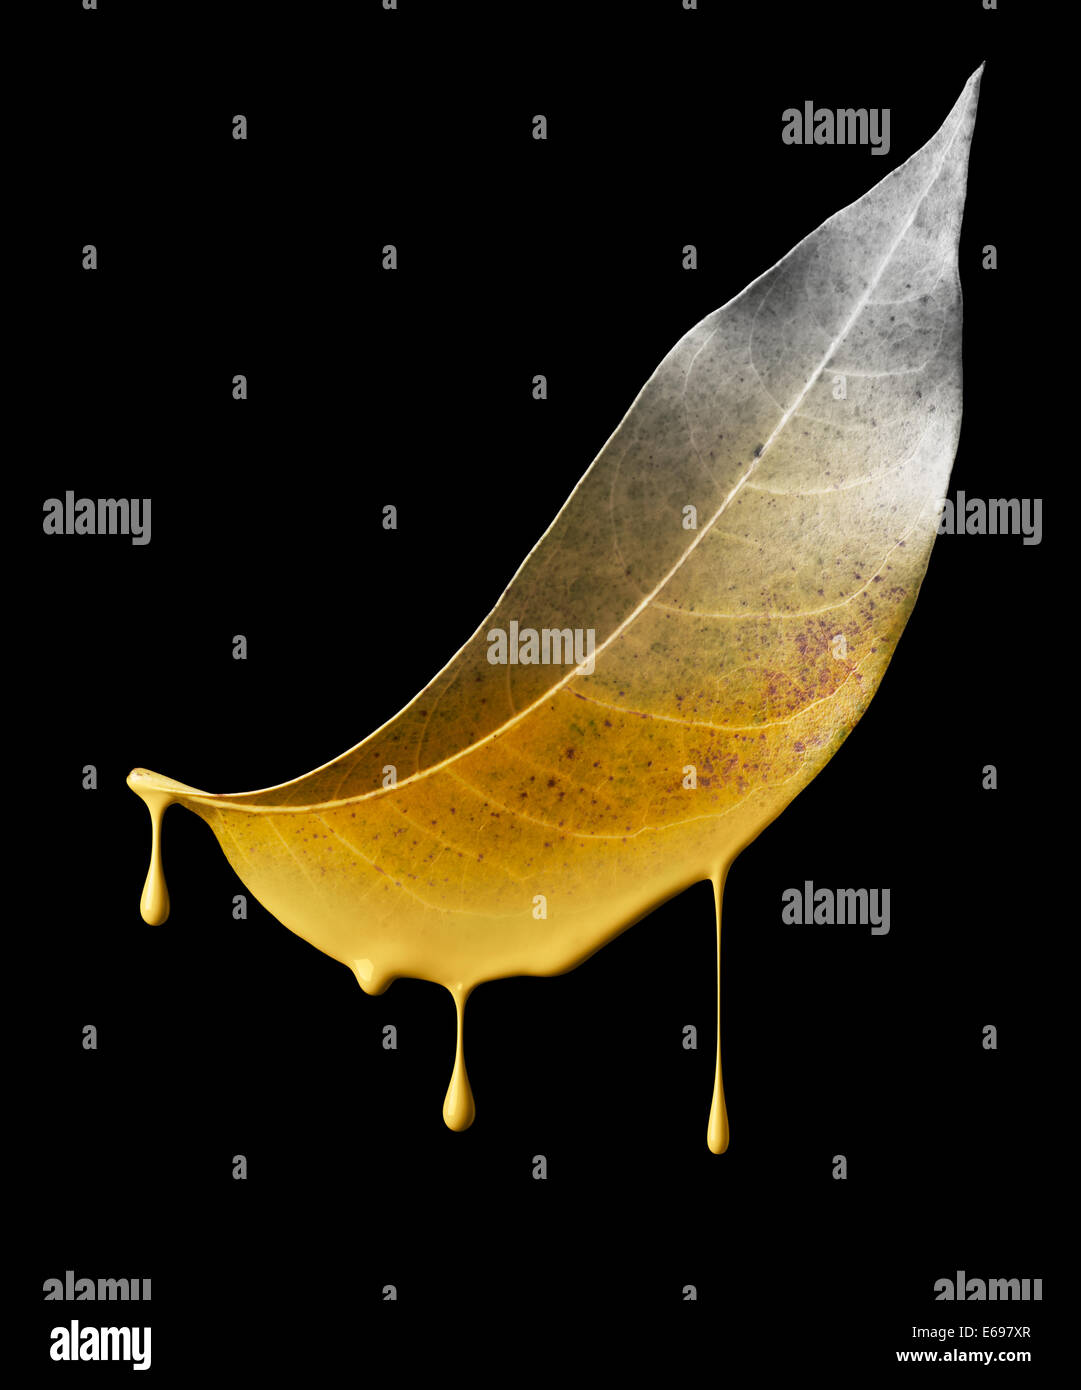 color dropping off from dried leaf, environmental damage concept - Stock Image